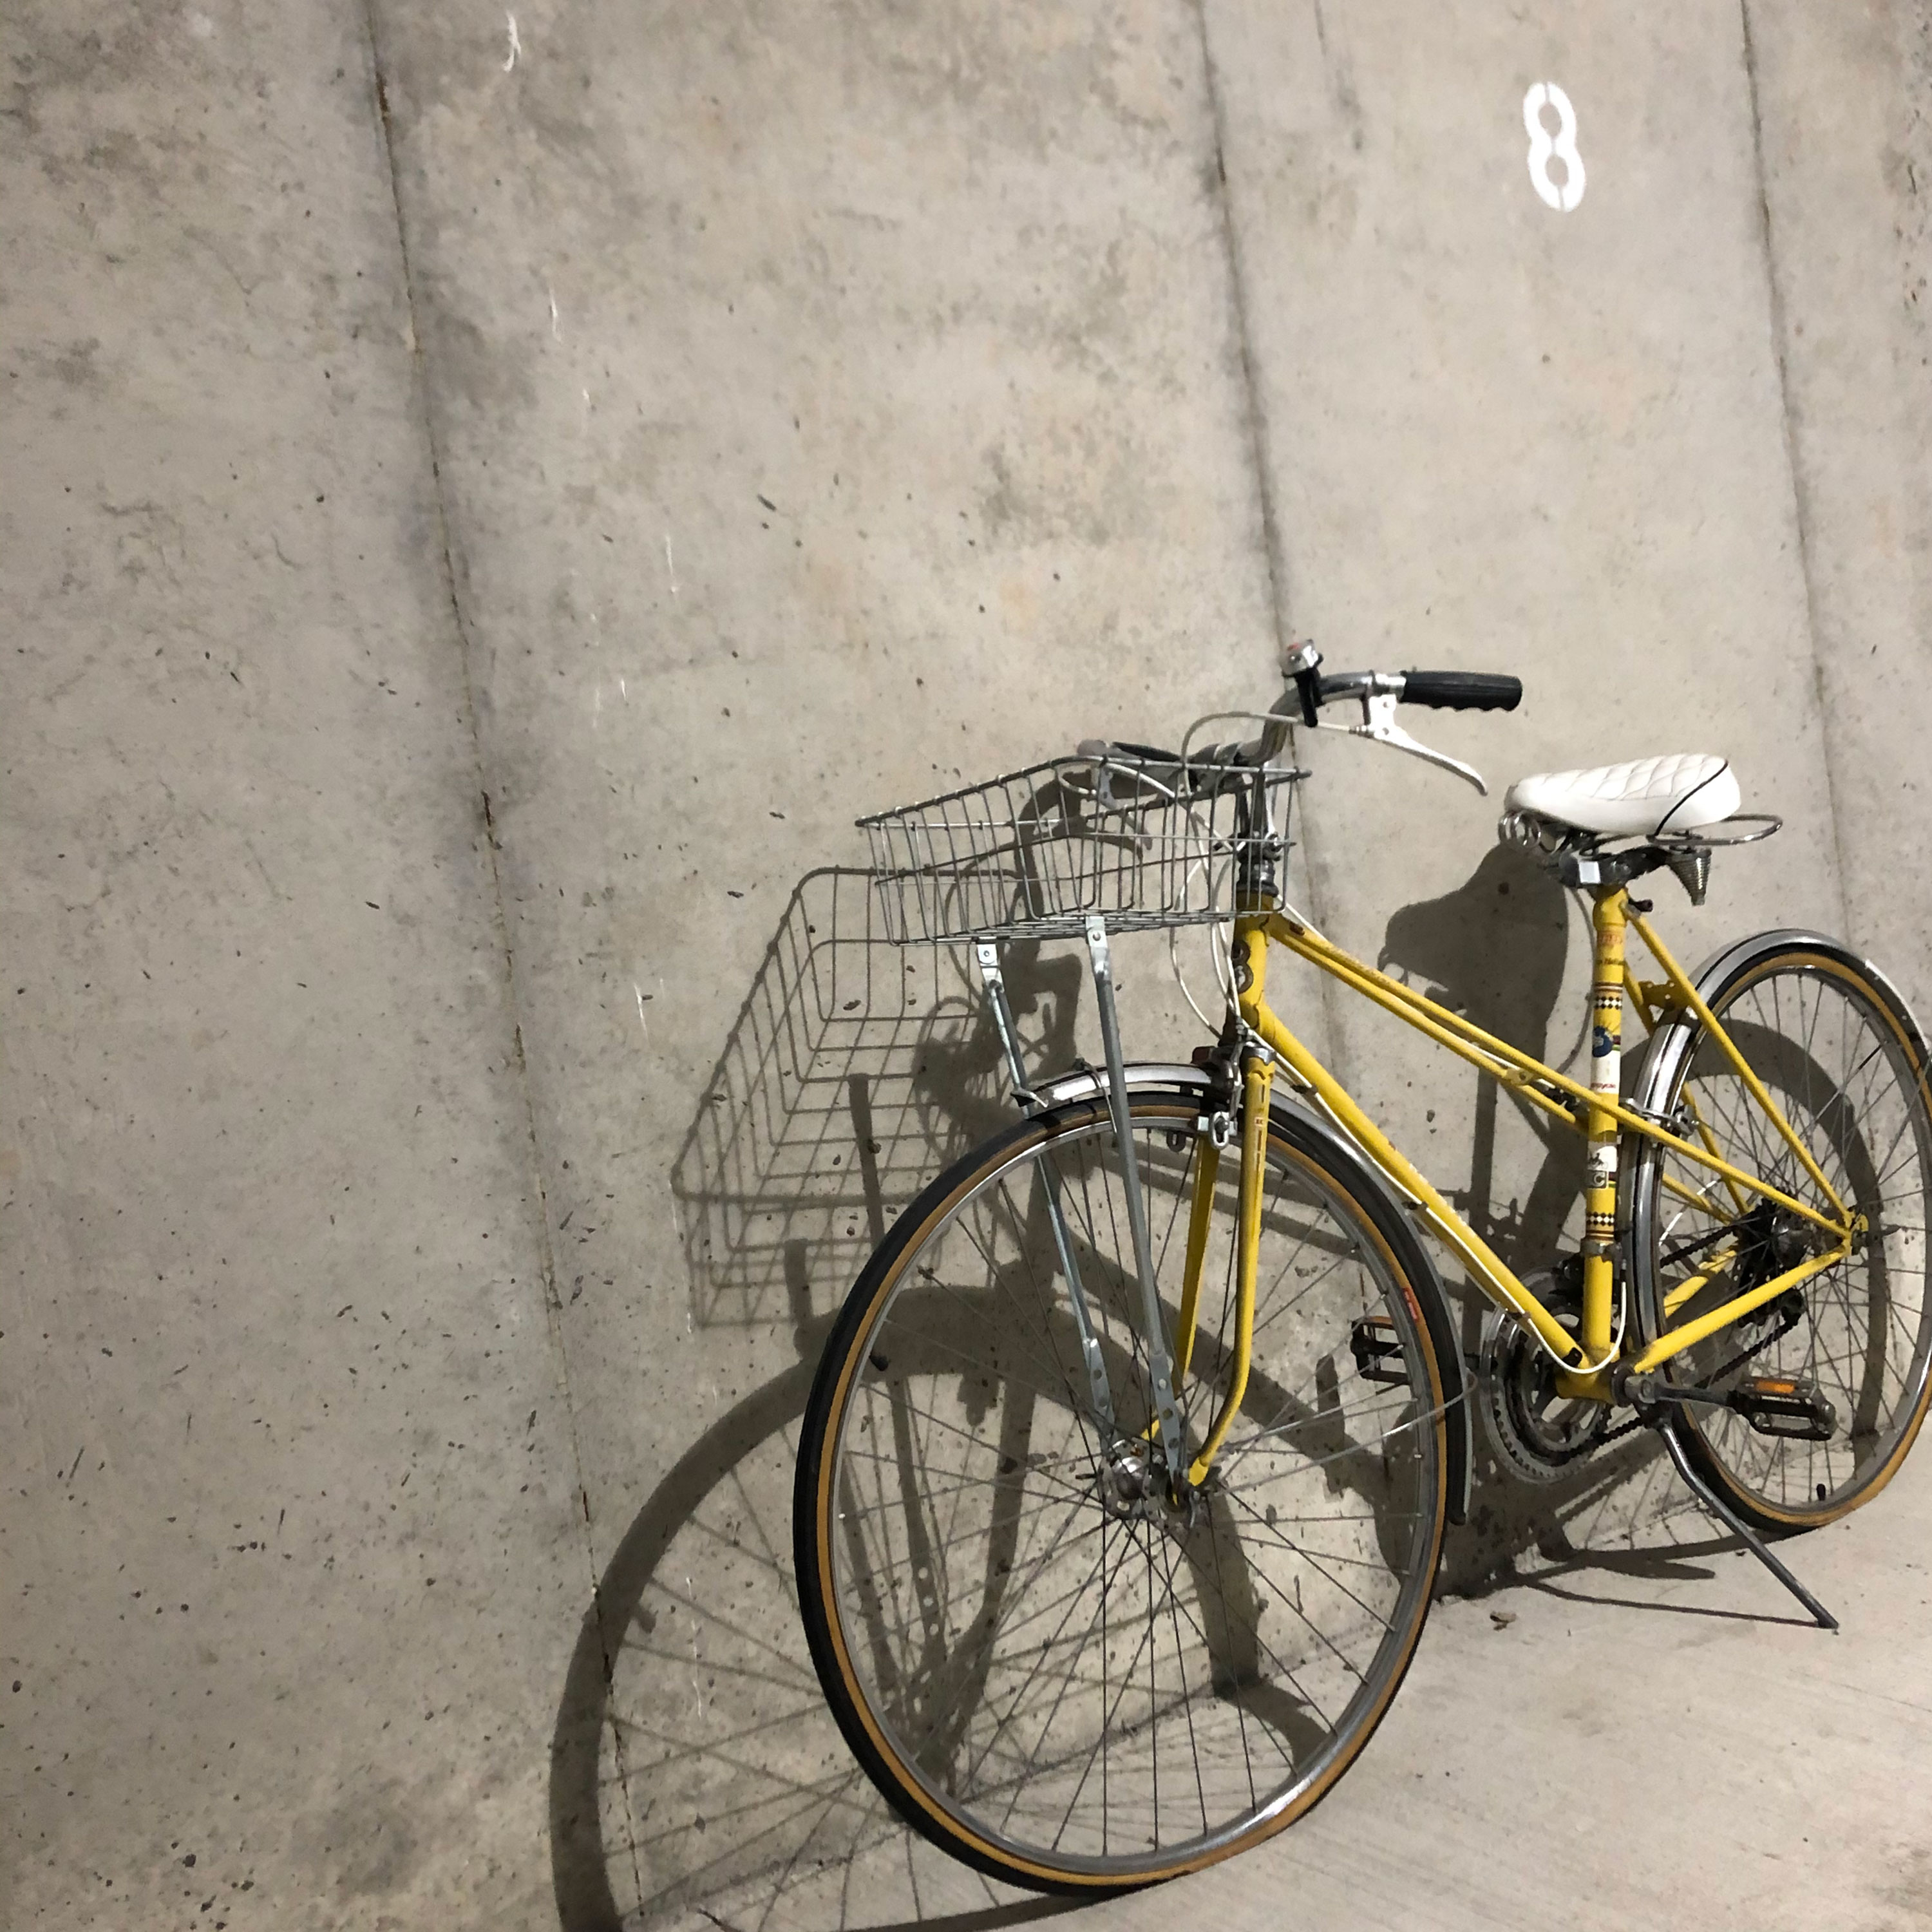 Yellow bike propped up against a grey cement wall.